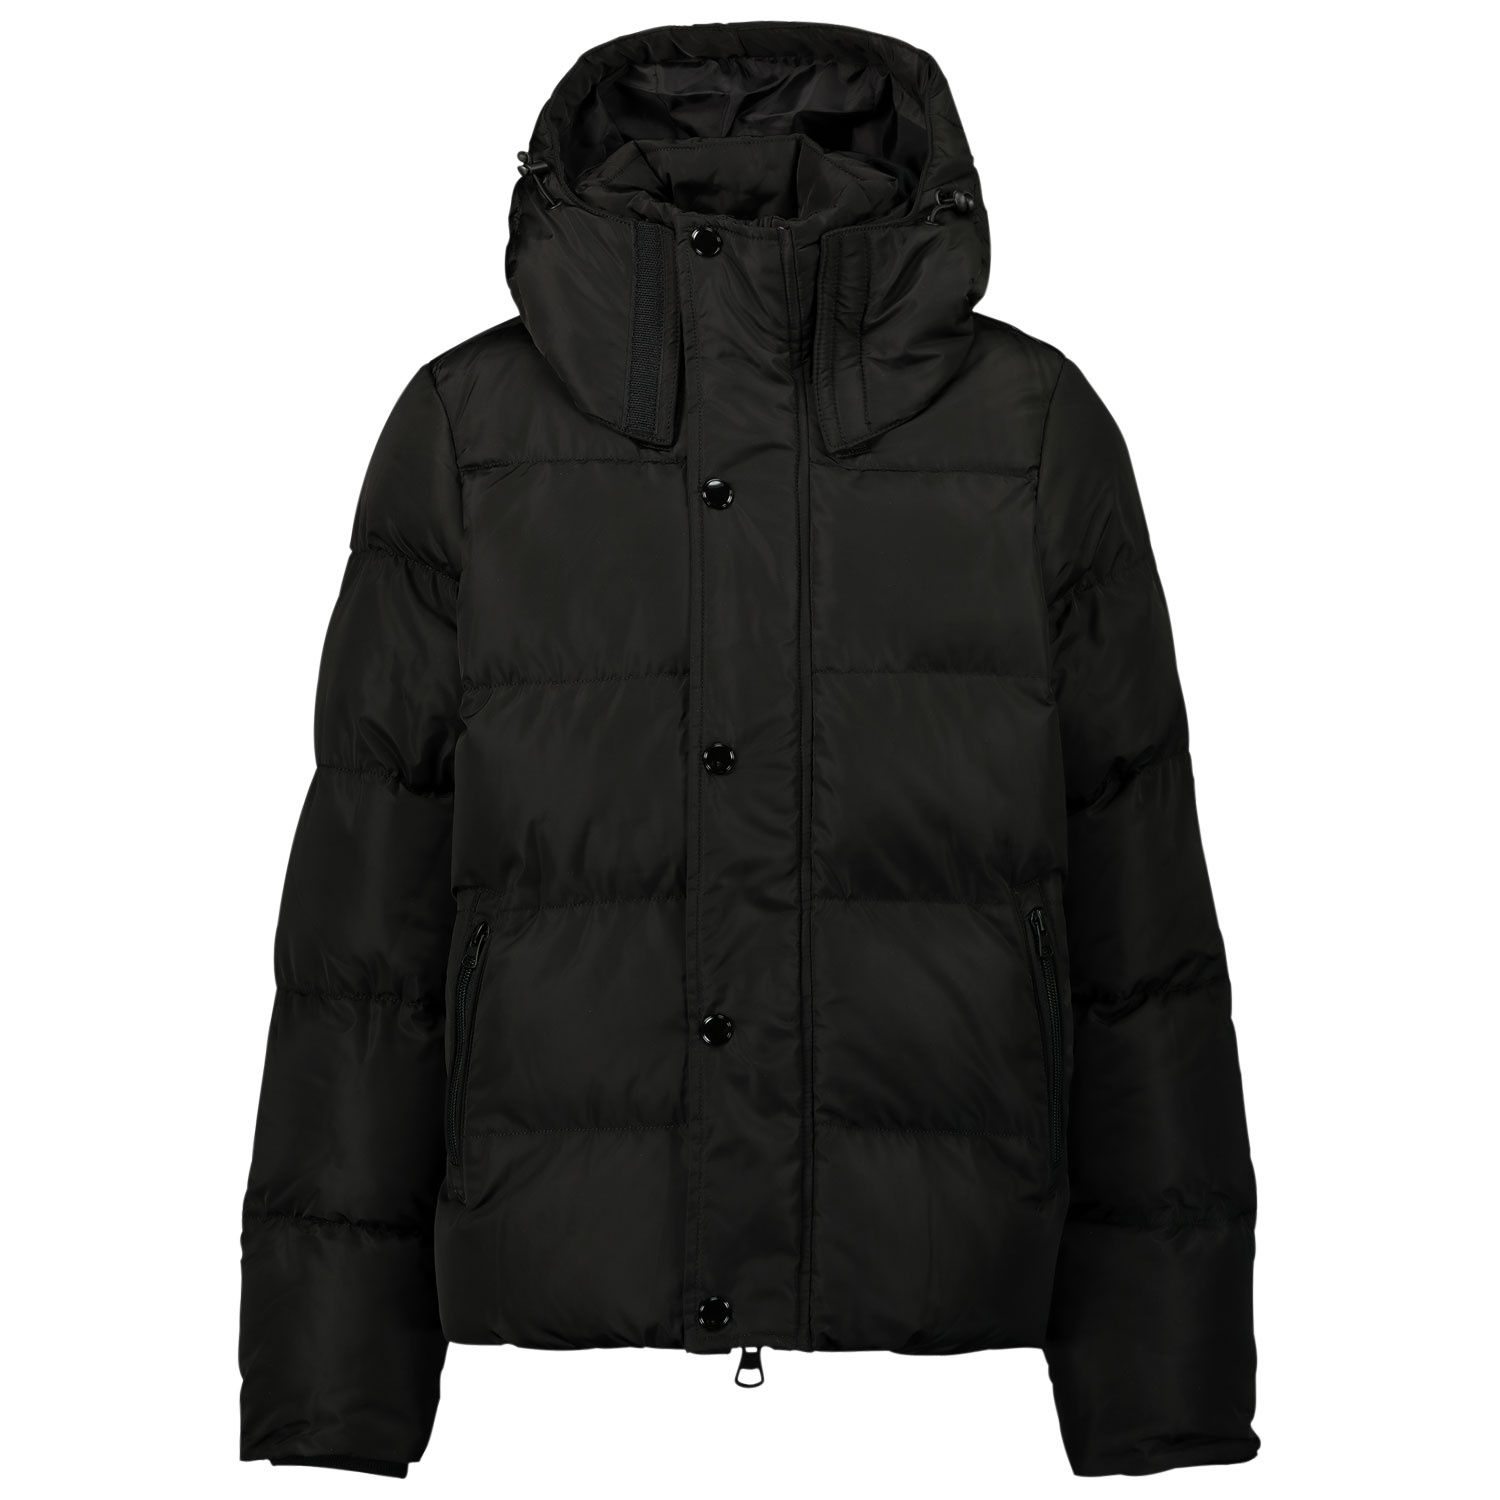 Picture of in Gold We Trust THE INFAMOUS kids jacket black